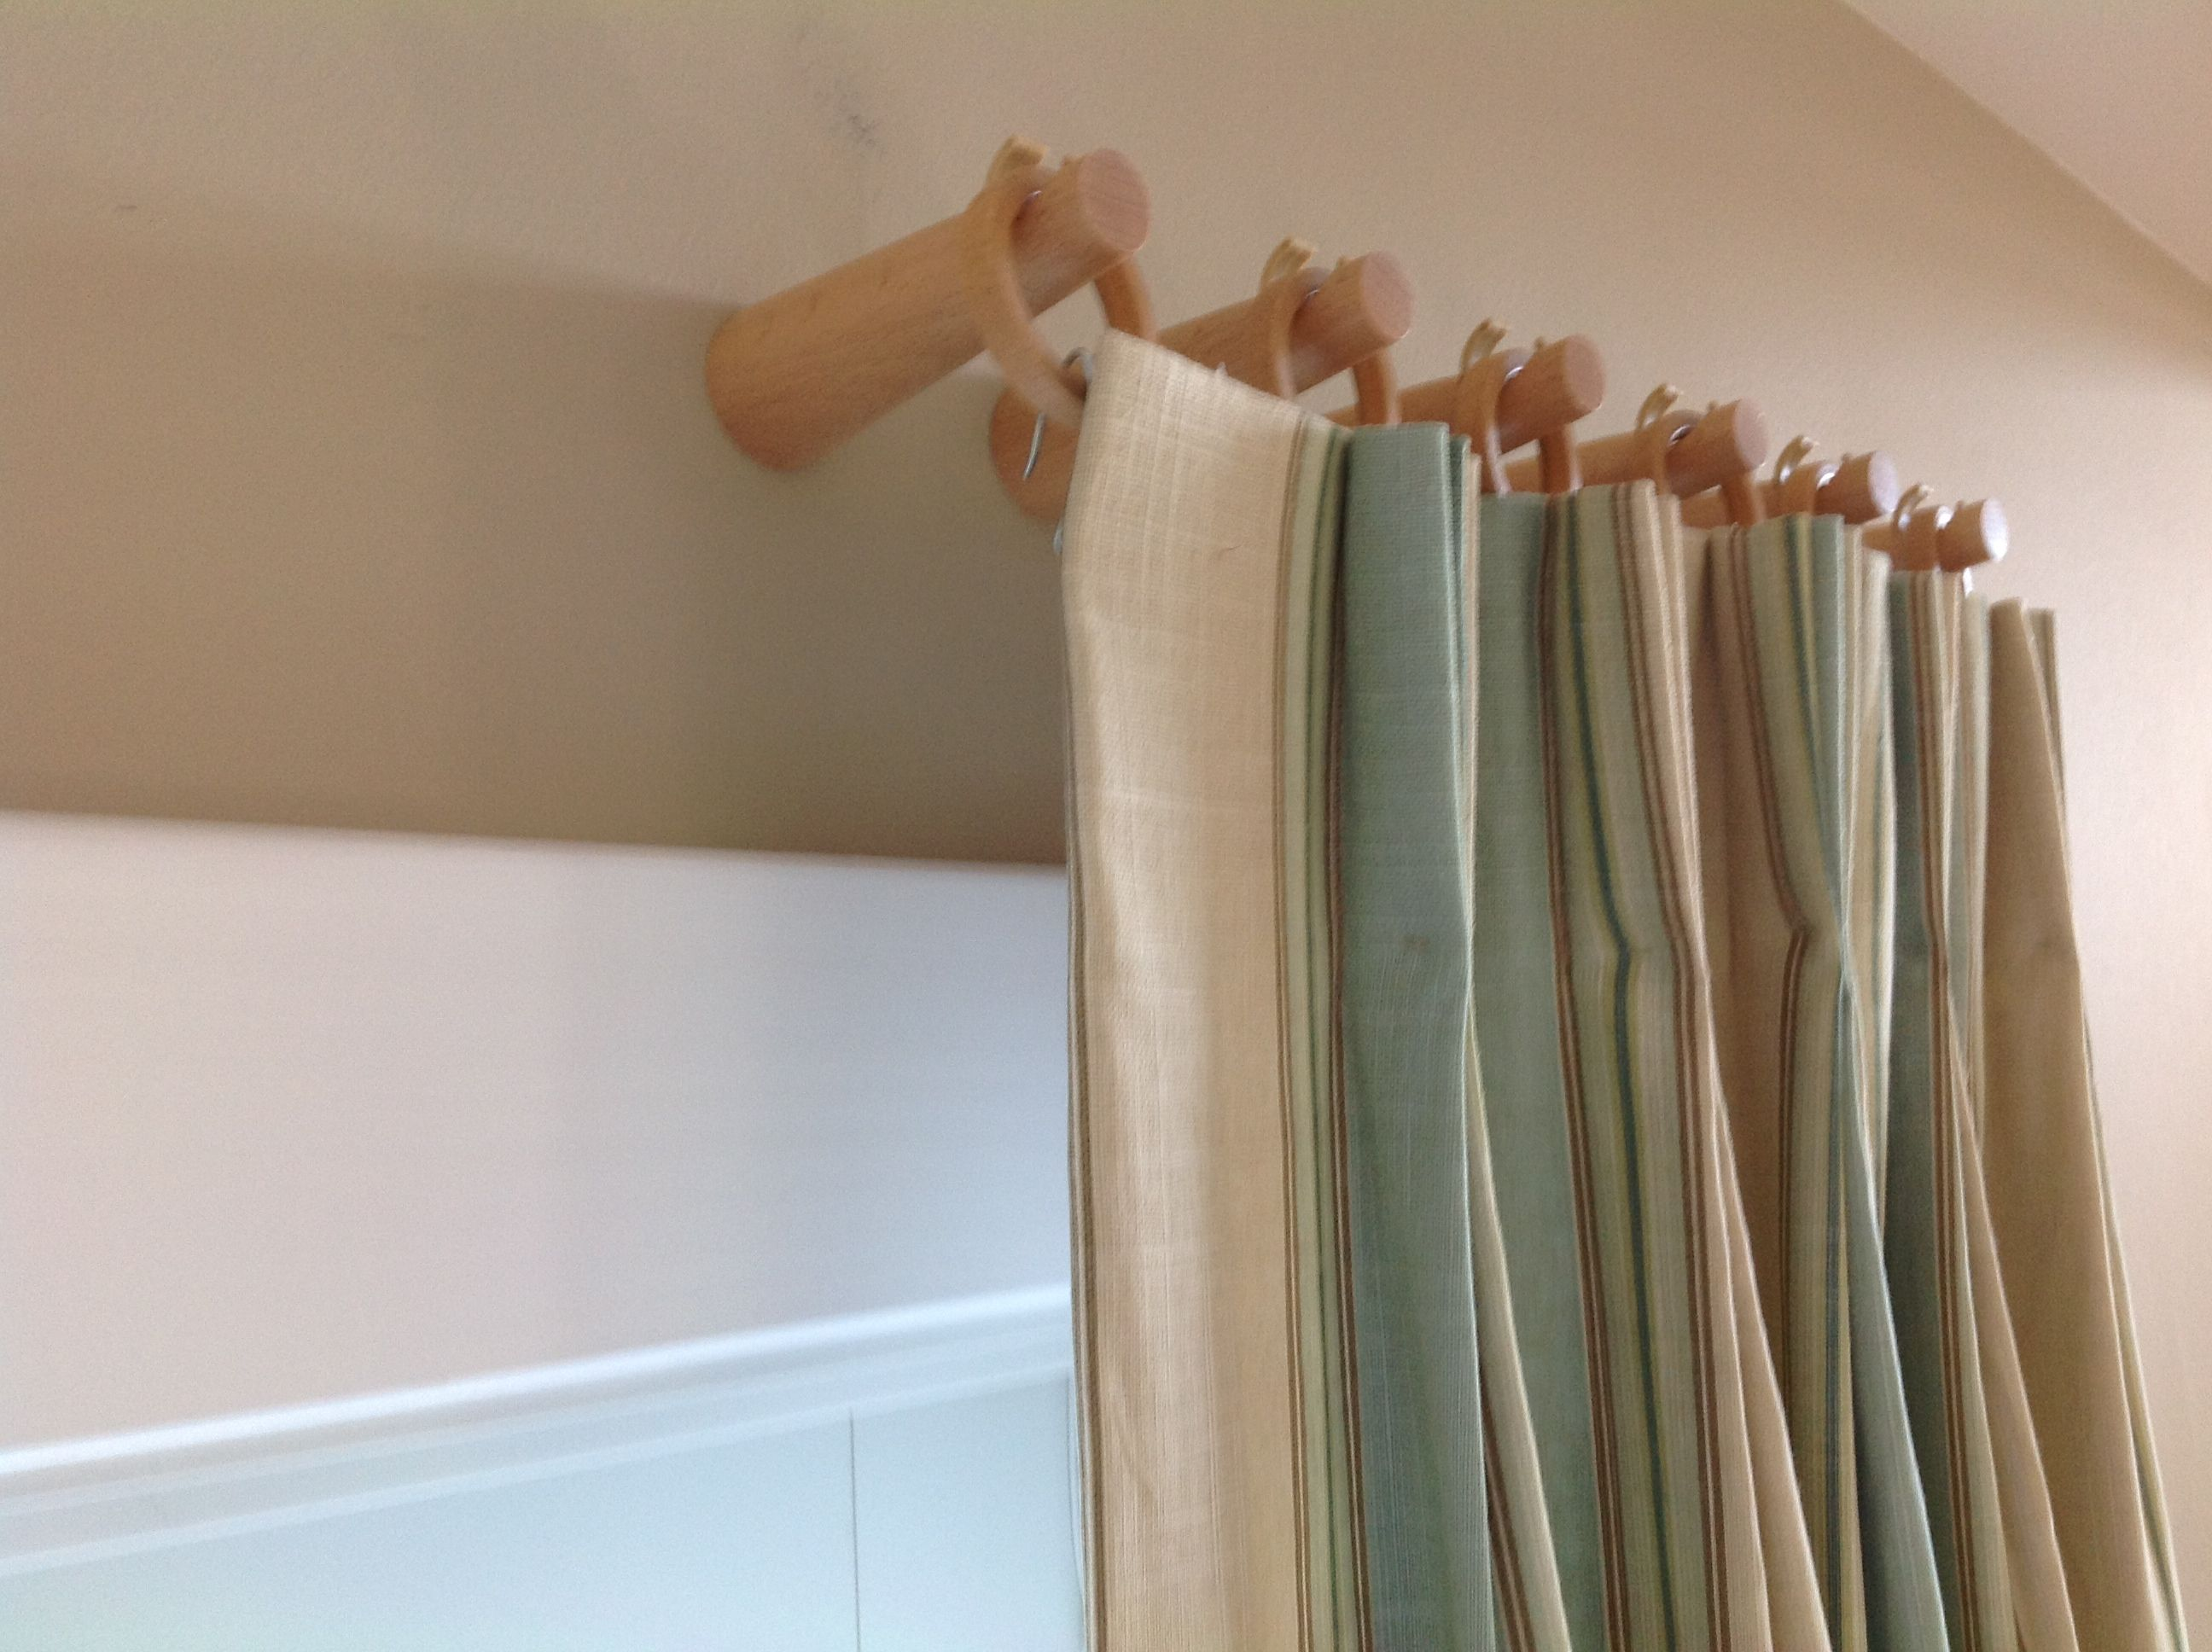 Instead Of Drapery Rods Use Wooden Pegs And Rings To Hang Your